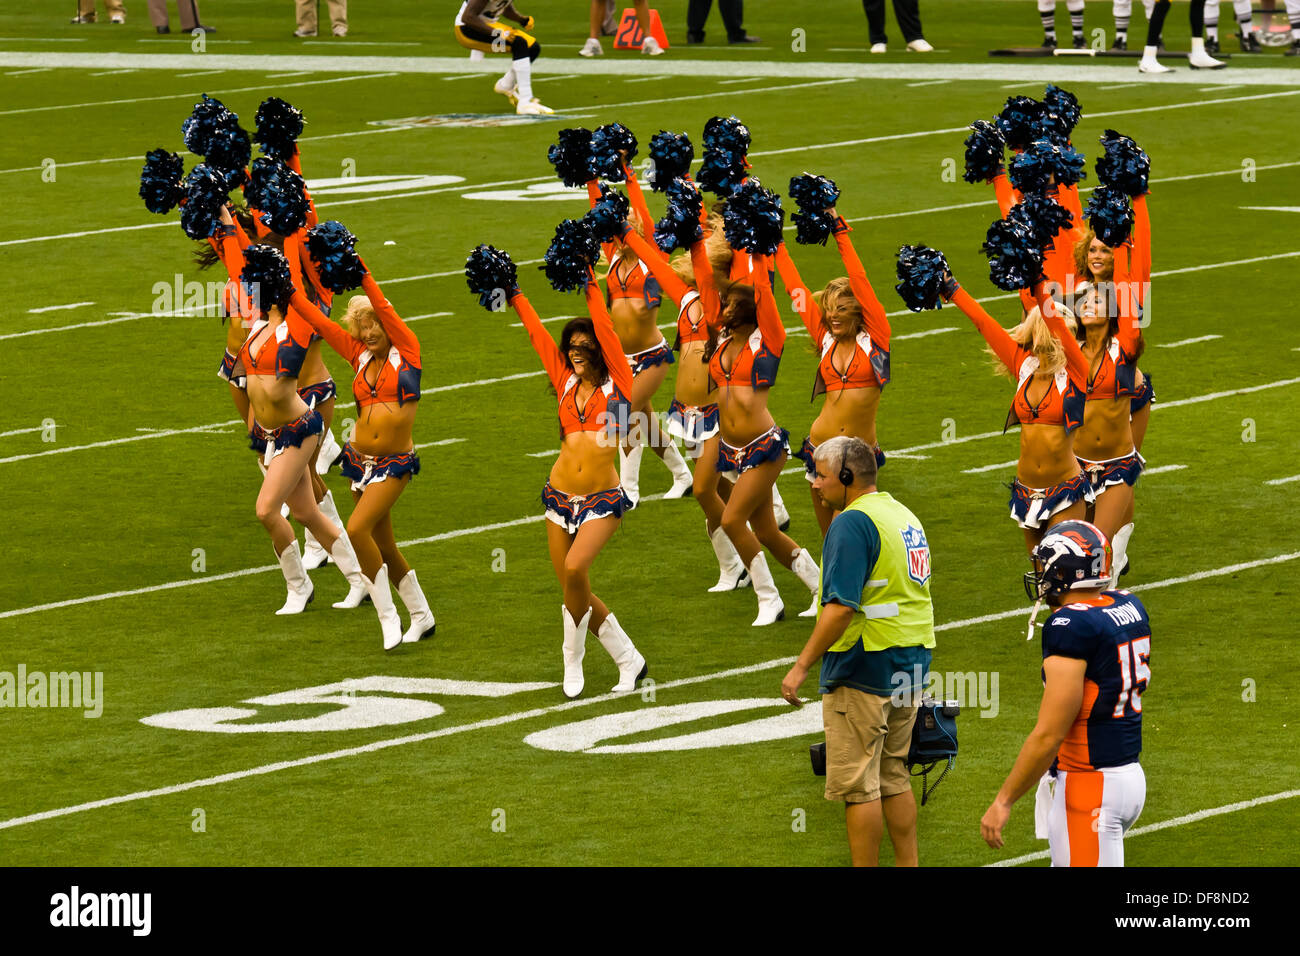 Denver Broncos Cheerleaders, Denver Broncos vs. Pittsburgh Steelers NFL football game, Invesco Field at Mile High Stock Photo